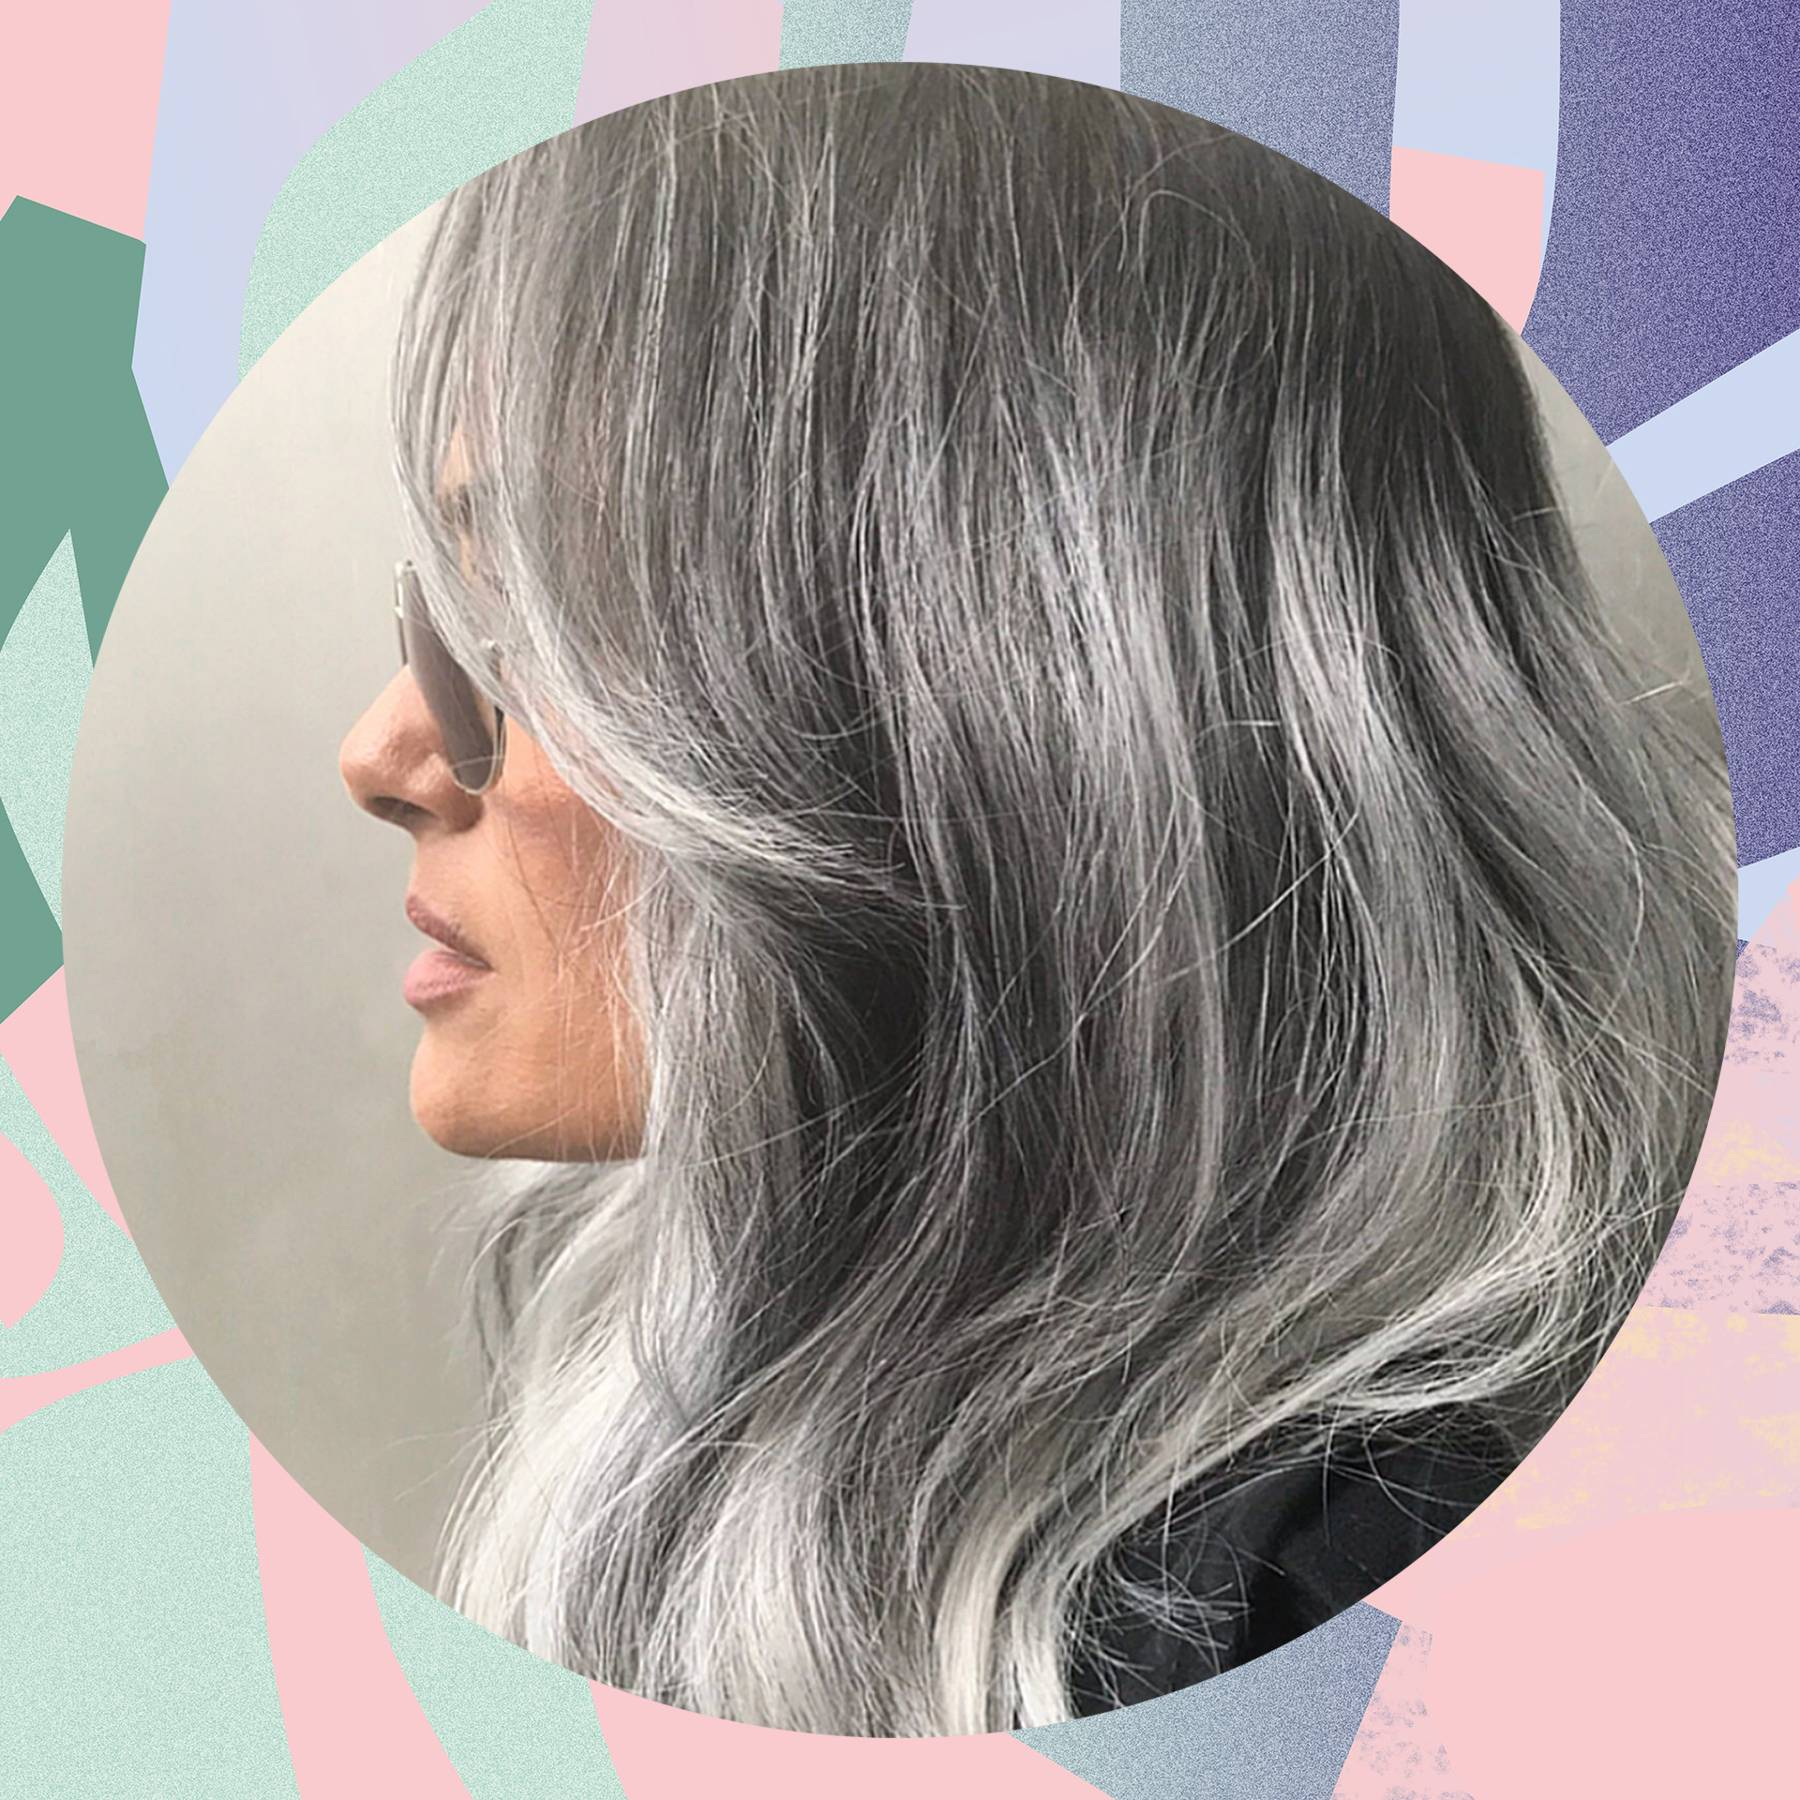 How To Get Grey Hair A Guide